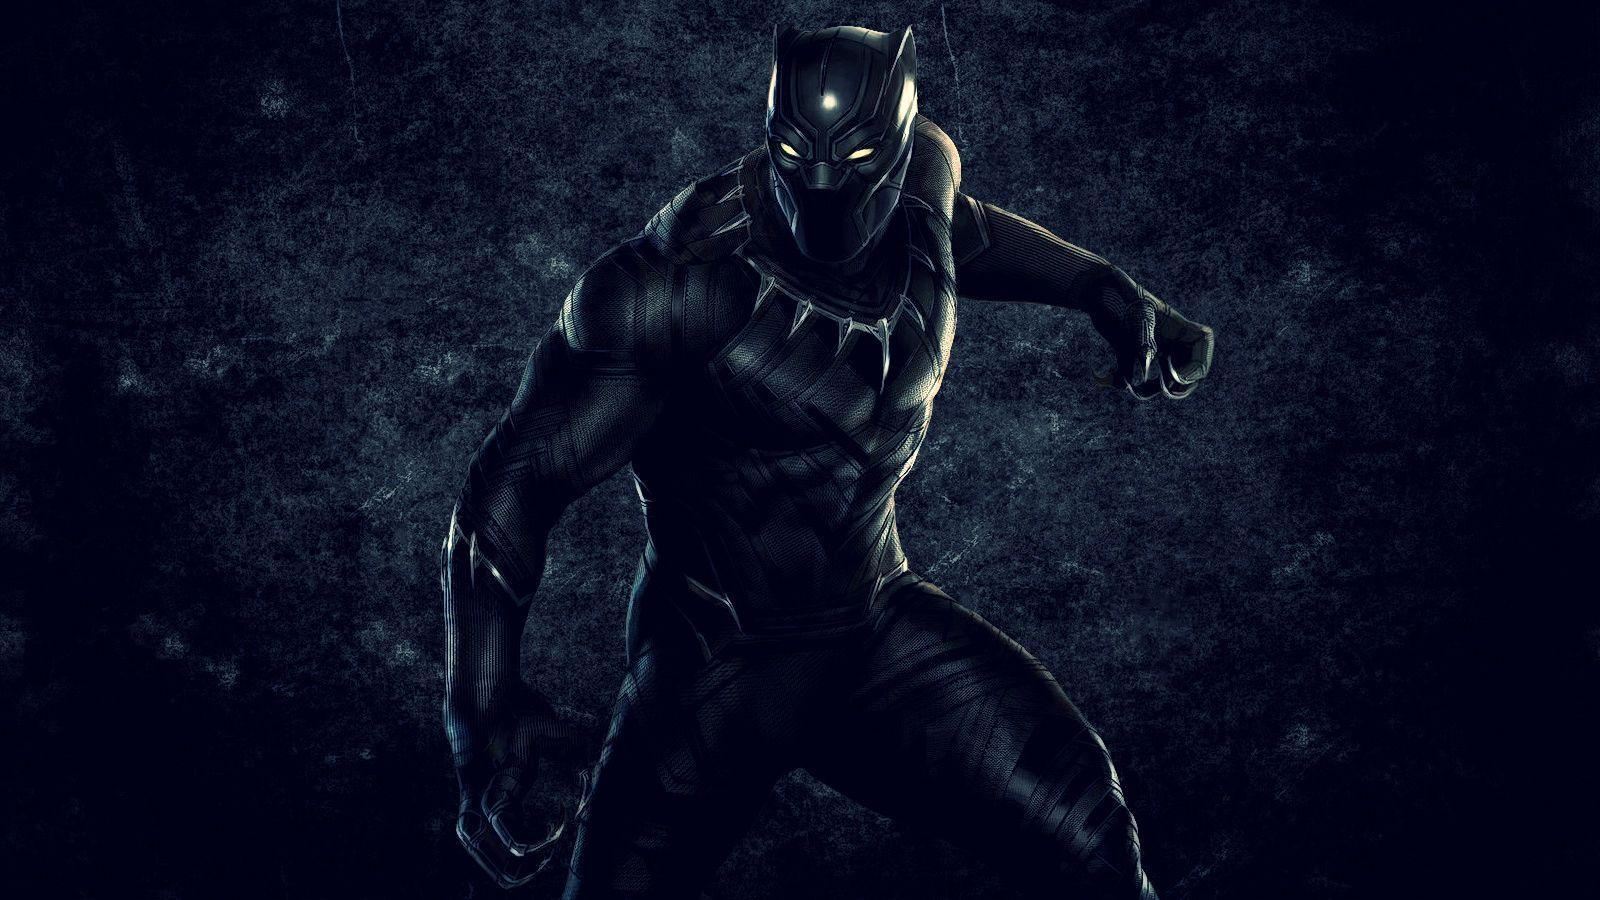 Wallpapers Images Picpile Black Panther Hd Desktop Wallpapers For 4k Ultra Hd